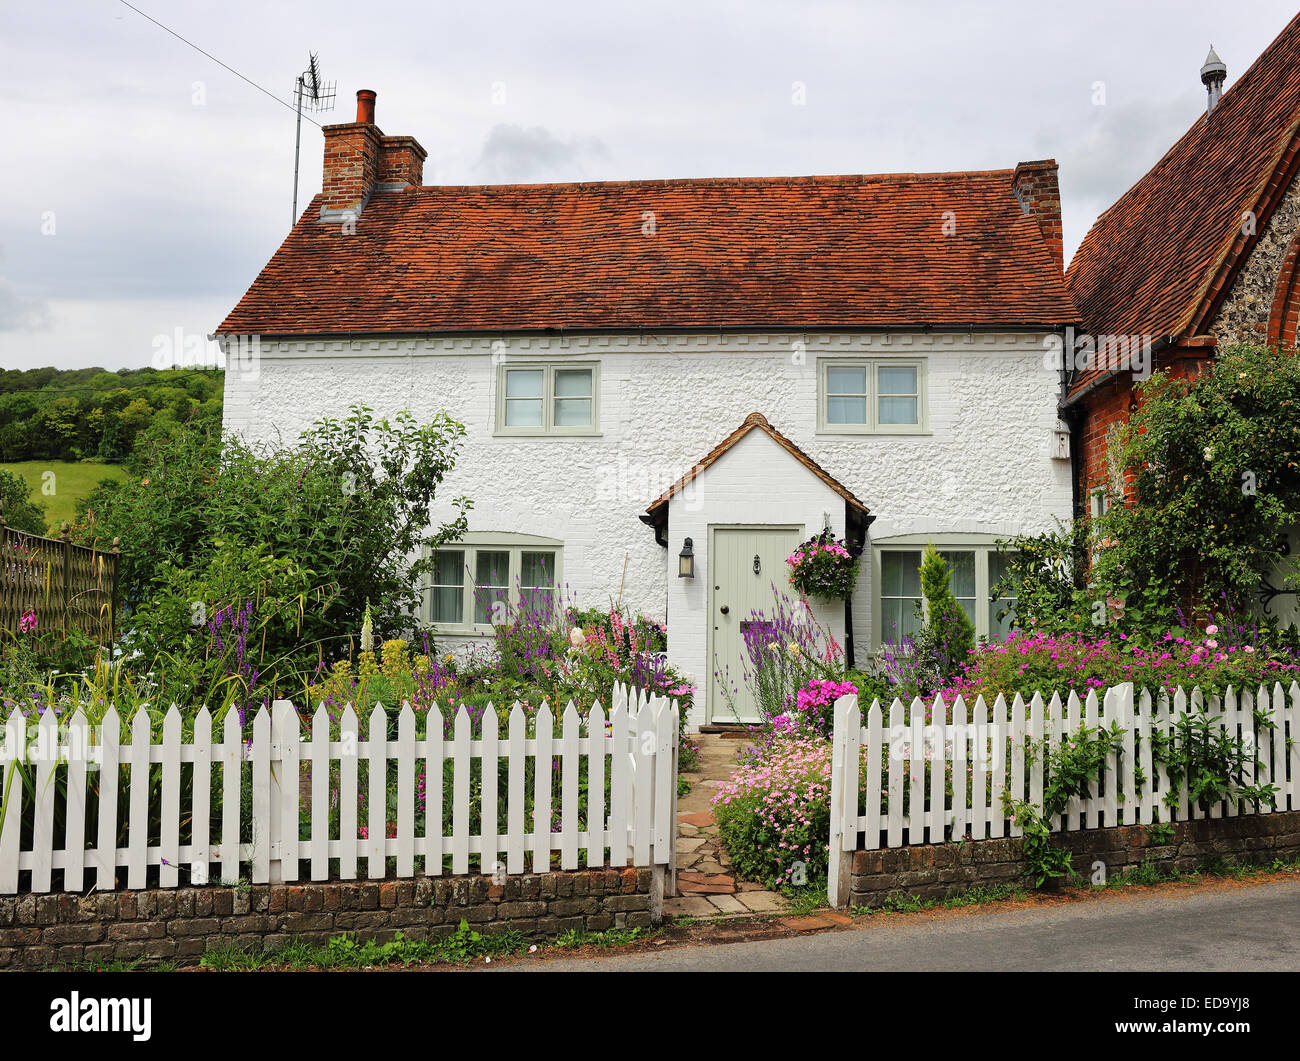 Traditional whitewashed english rural stone cottage and